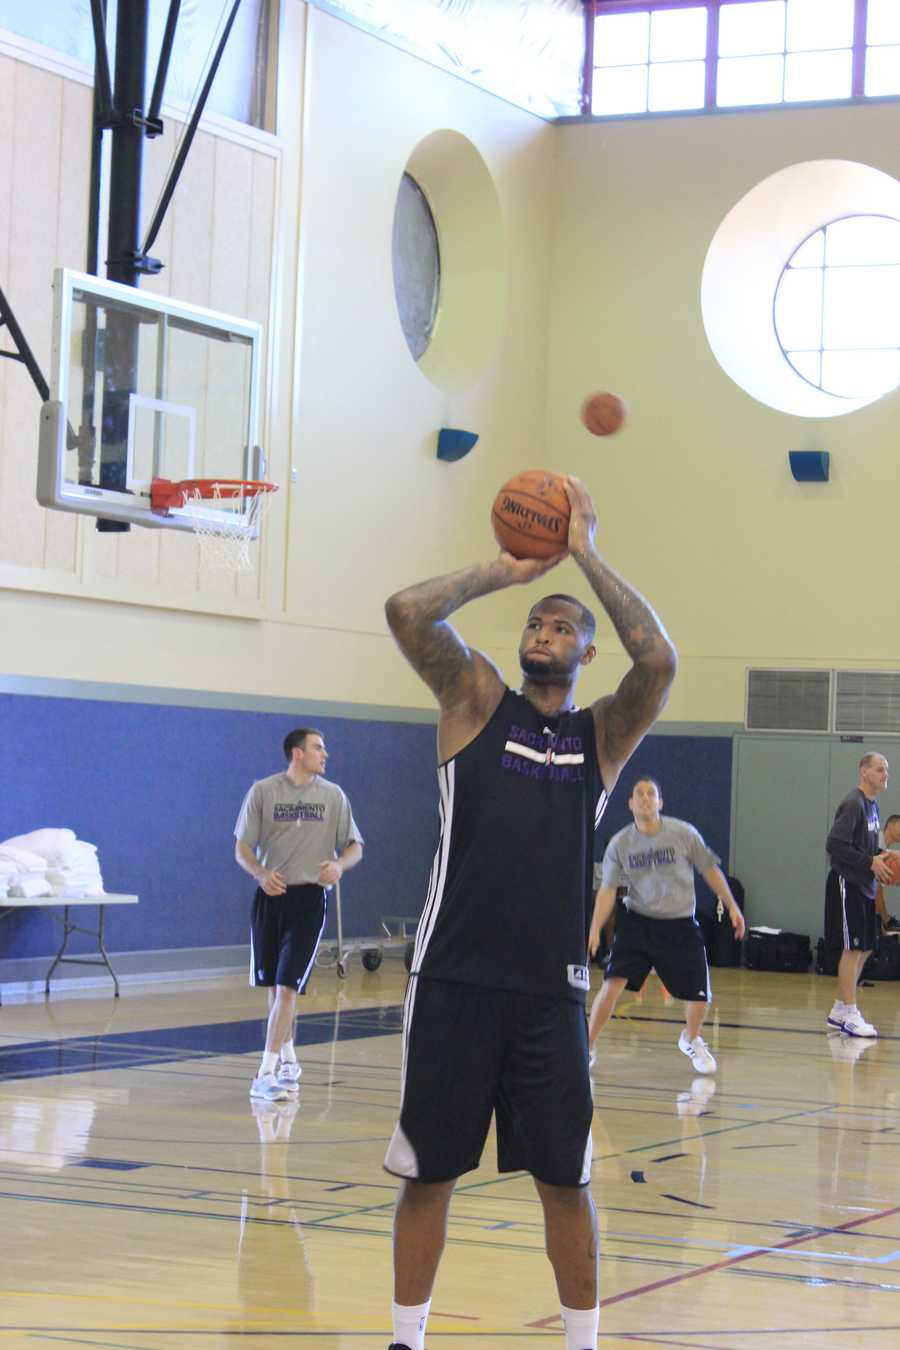 Cousins has proven to be problematic in his three-plus seasons with the Kings, with run-ins with coaches, suspensions, technical fouls and perceived negative demeanor on the court. But his talents are rarely questioned. This preseason, while just averaging 24 minutes, Cousins posted impressive numbers: 19.3 points and 8.7 rebounds.